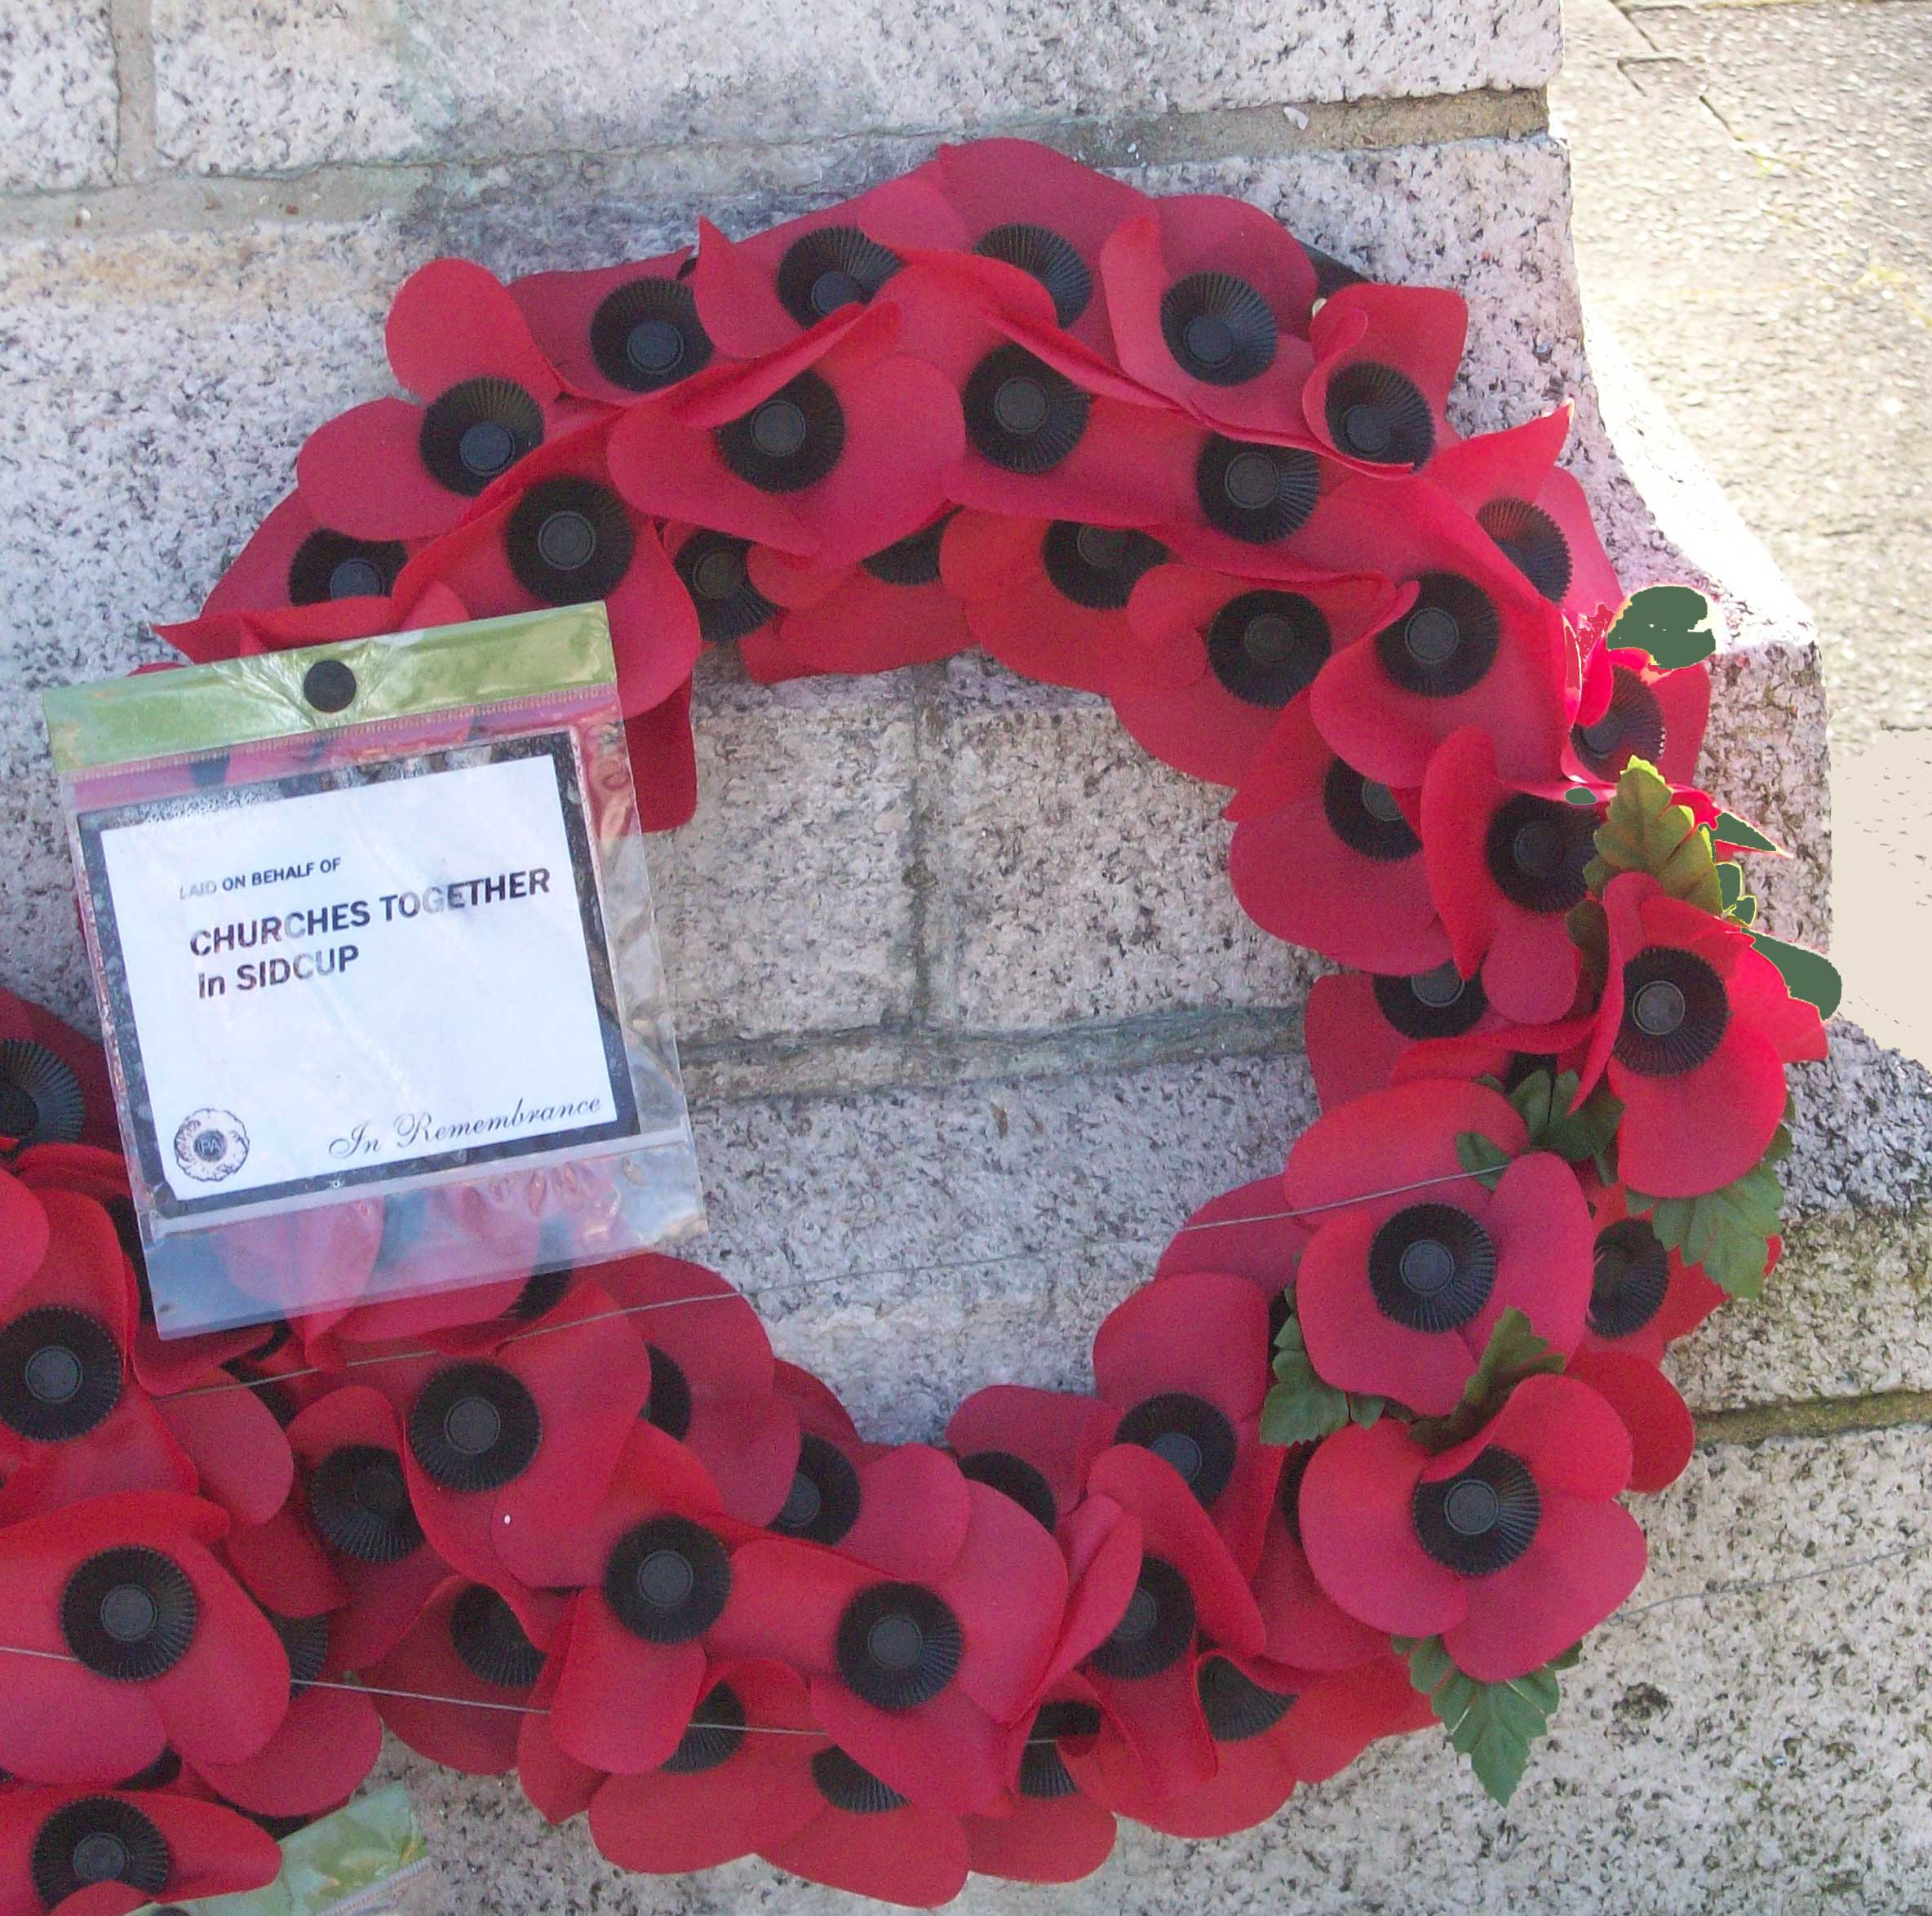 Remembrance Ceremony at The  Green, Sidcup Place on Sunday 11th November